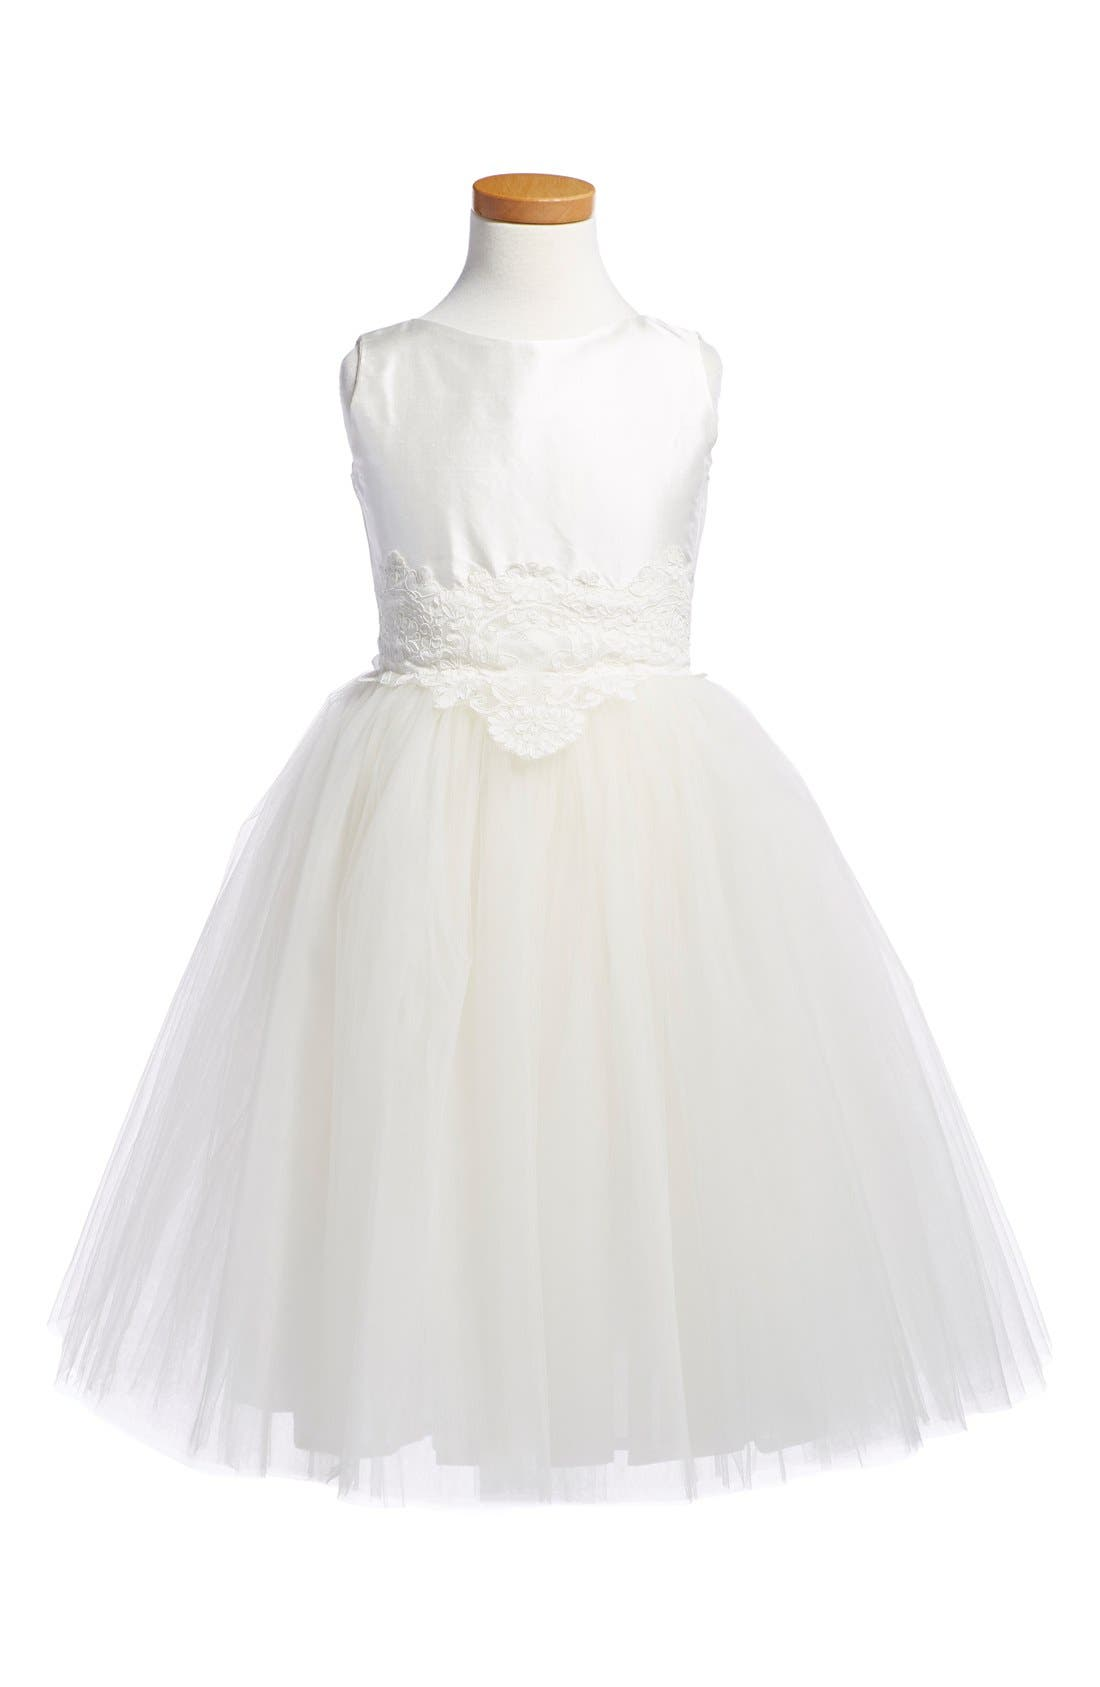 Isabel Garreton 'Enchanting' Sleeveless Taffeta Dress (Toddler Girls, Little Girls & Big Girls)